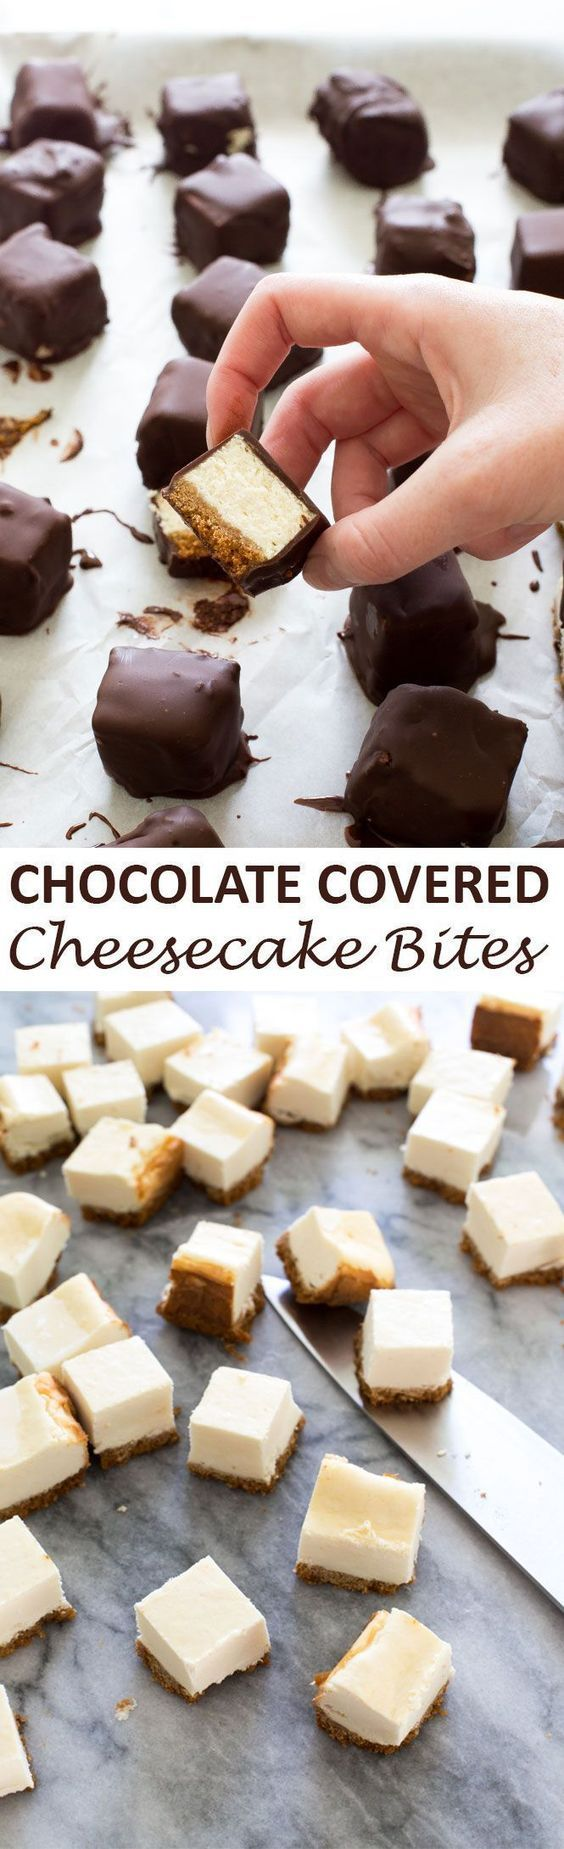 White Chocolate Oreo Truffles are quick easy and perfect sweet treat for those who do not want to spend time baking. | Cakescottage |